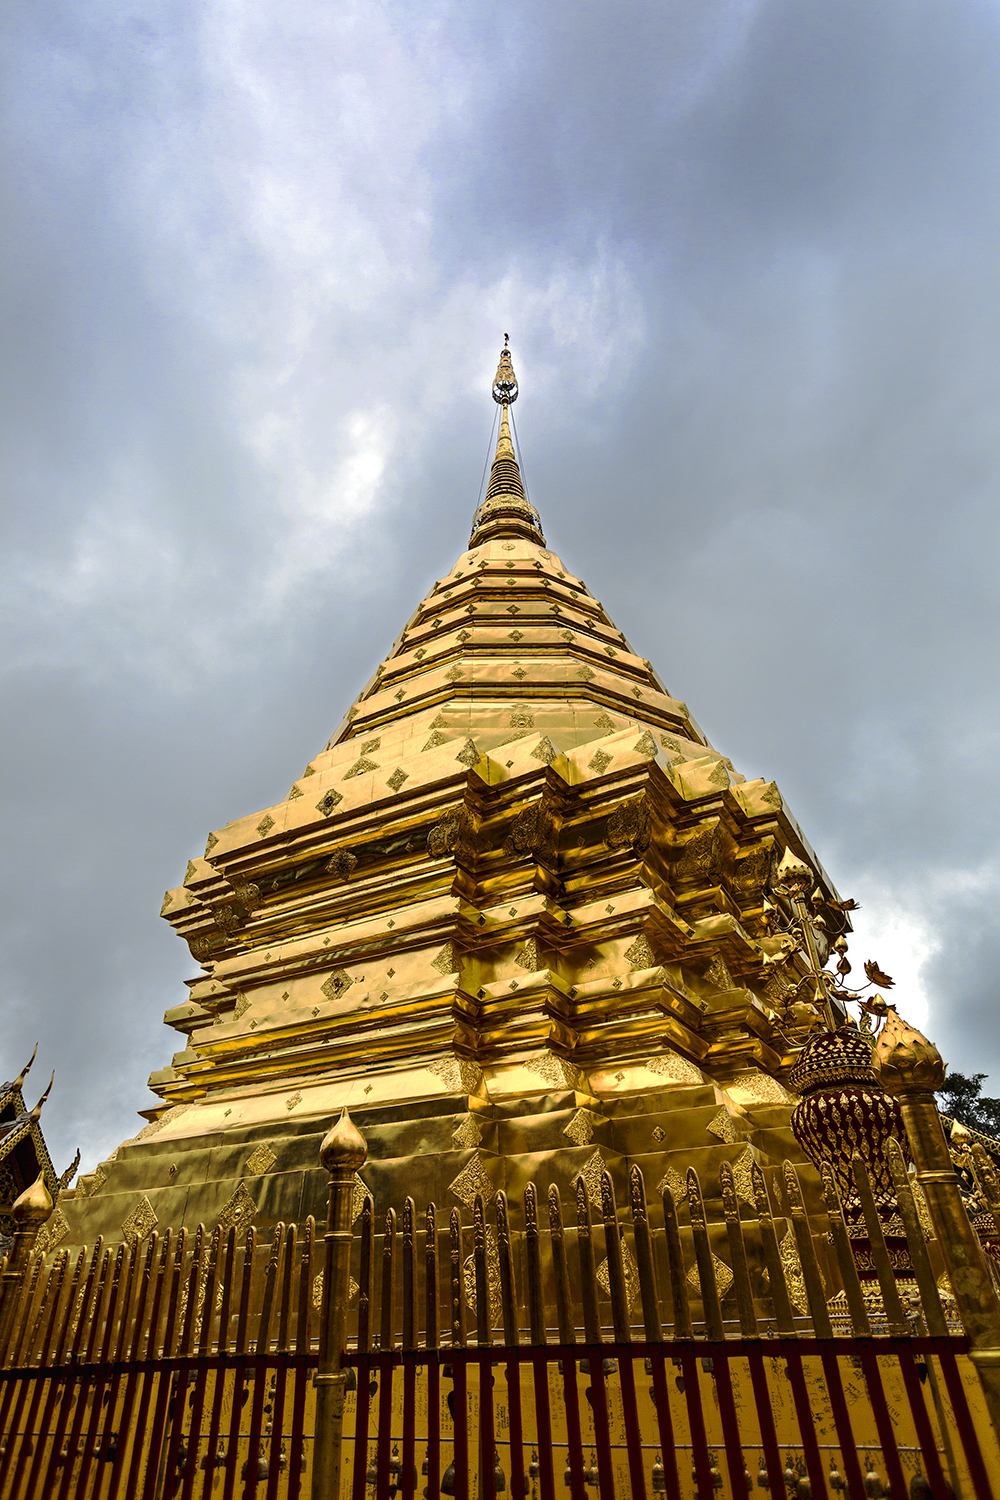 Wat That Phra Doi Suthep